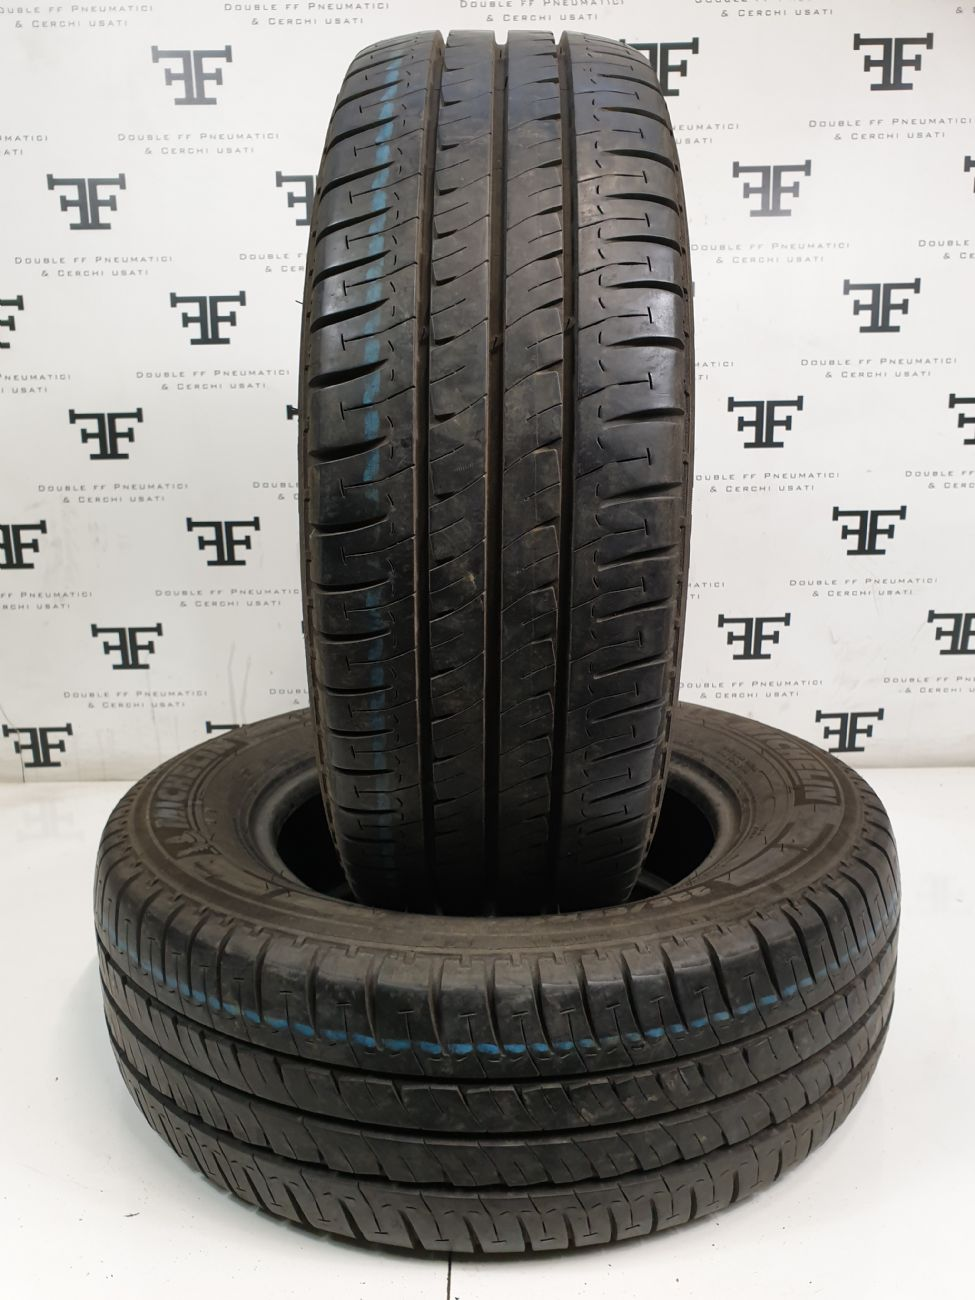 225/75 R16C 118/116 R MICHELIN AGILIS DEMONTE